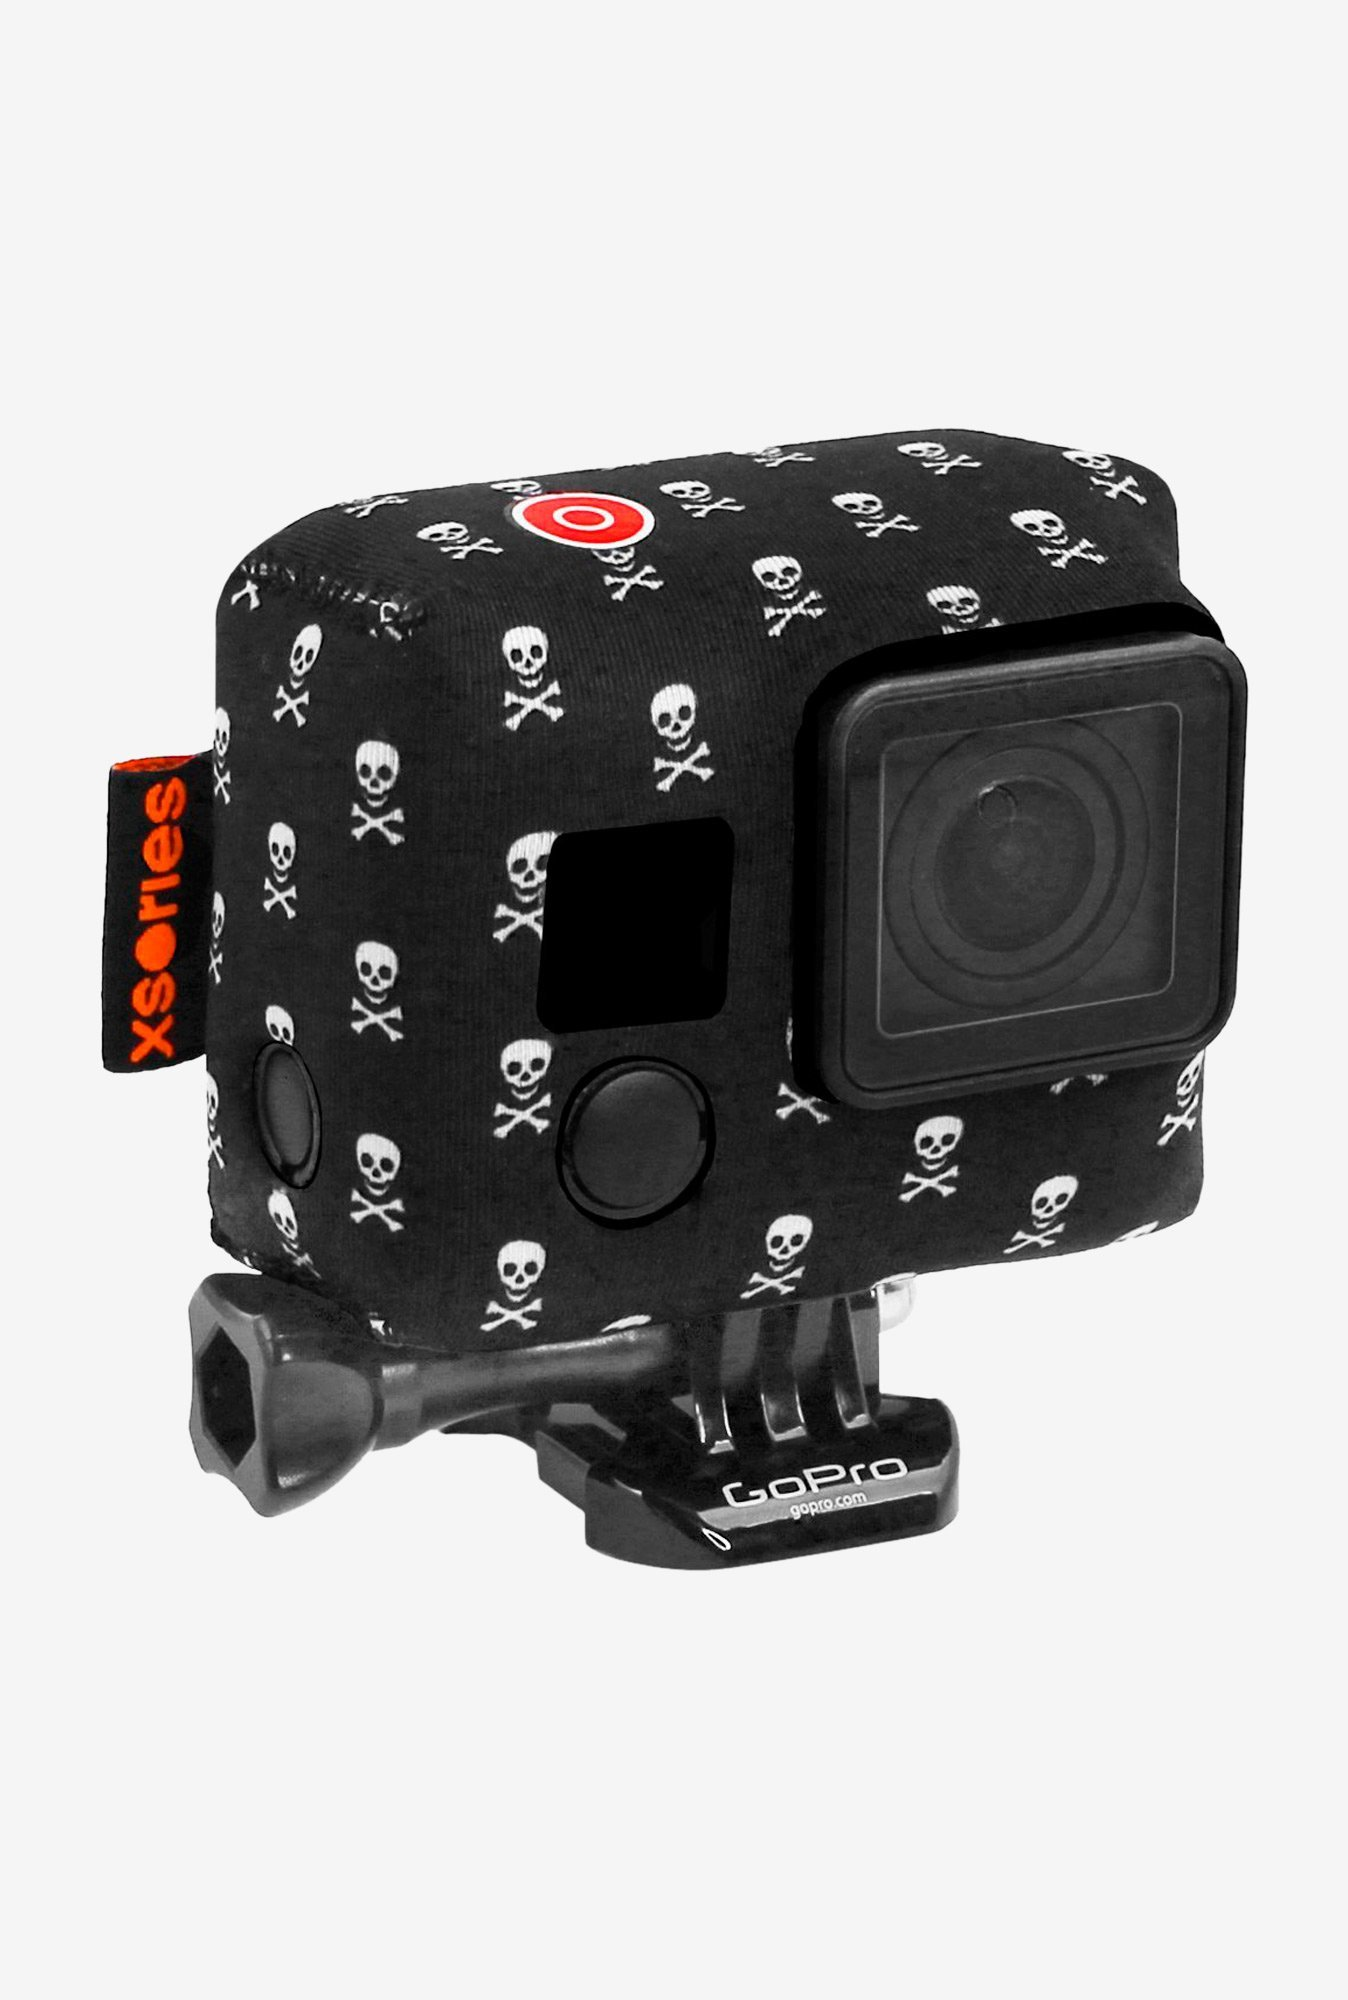 XSories Tuxedo TXSD3A806 Camera Cover Black